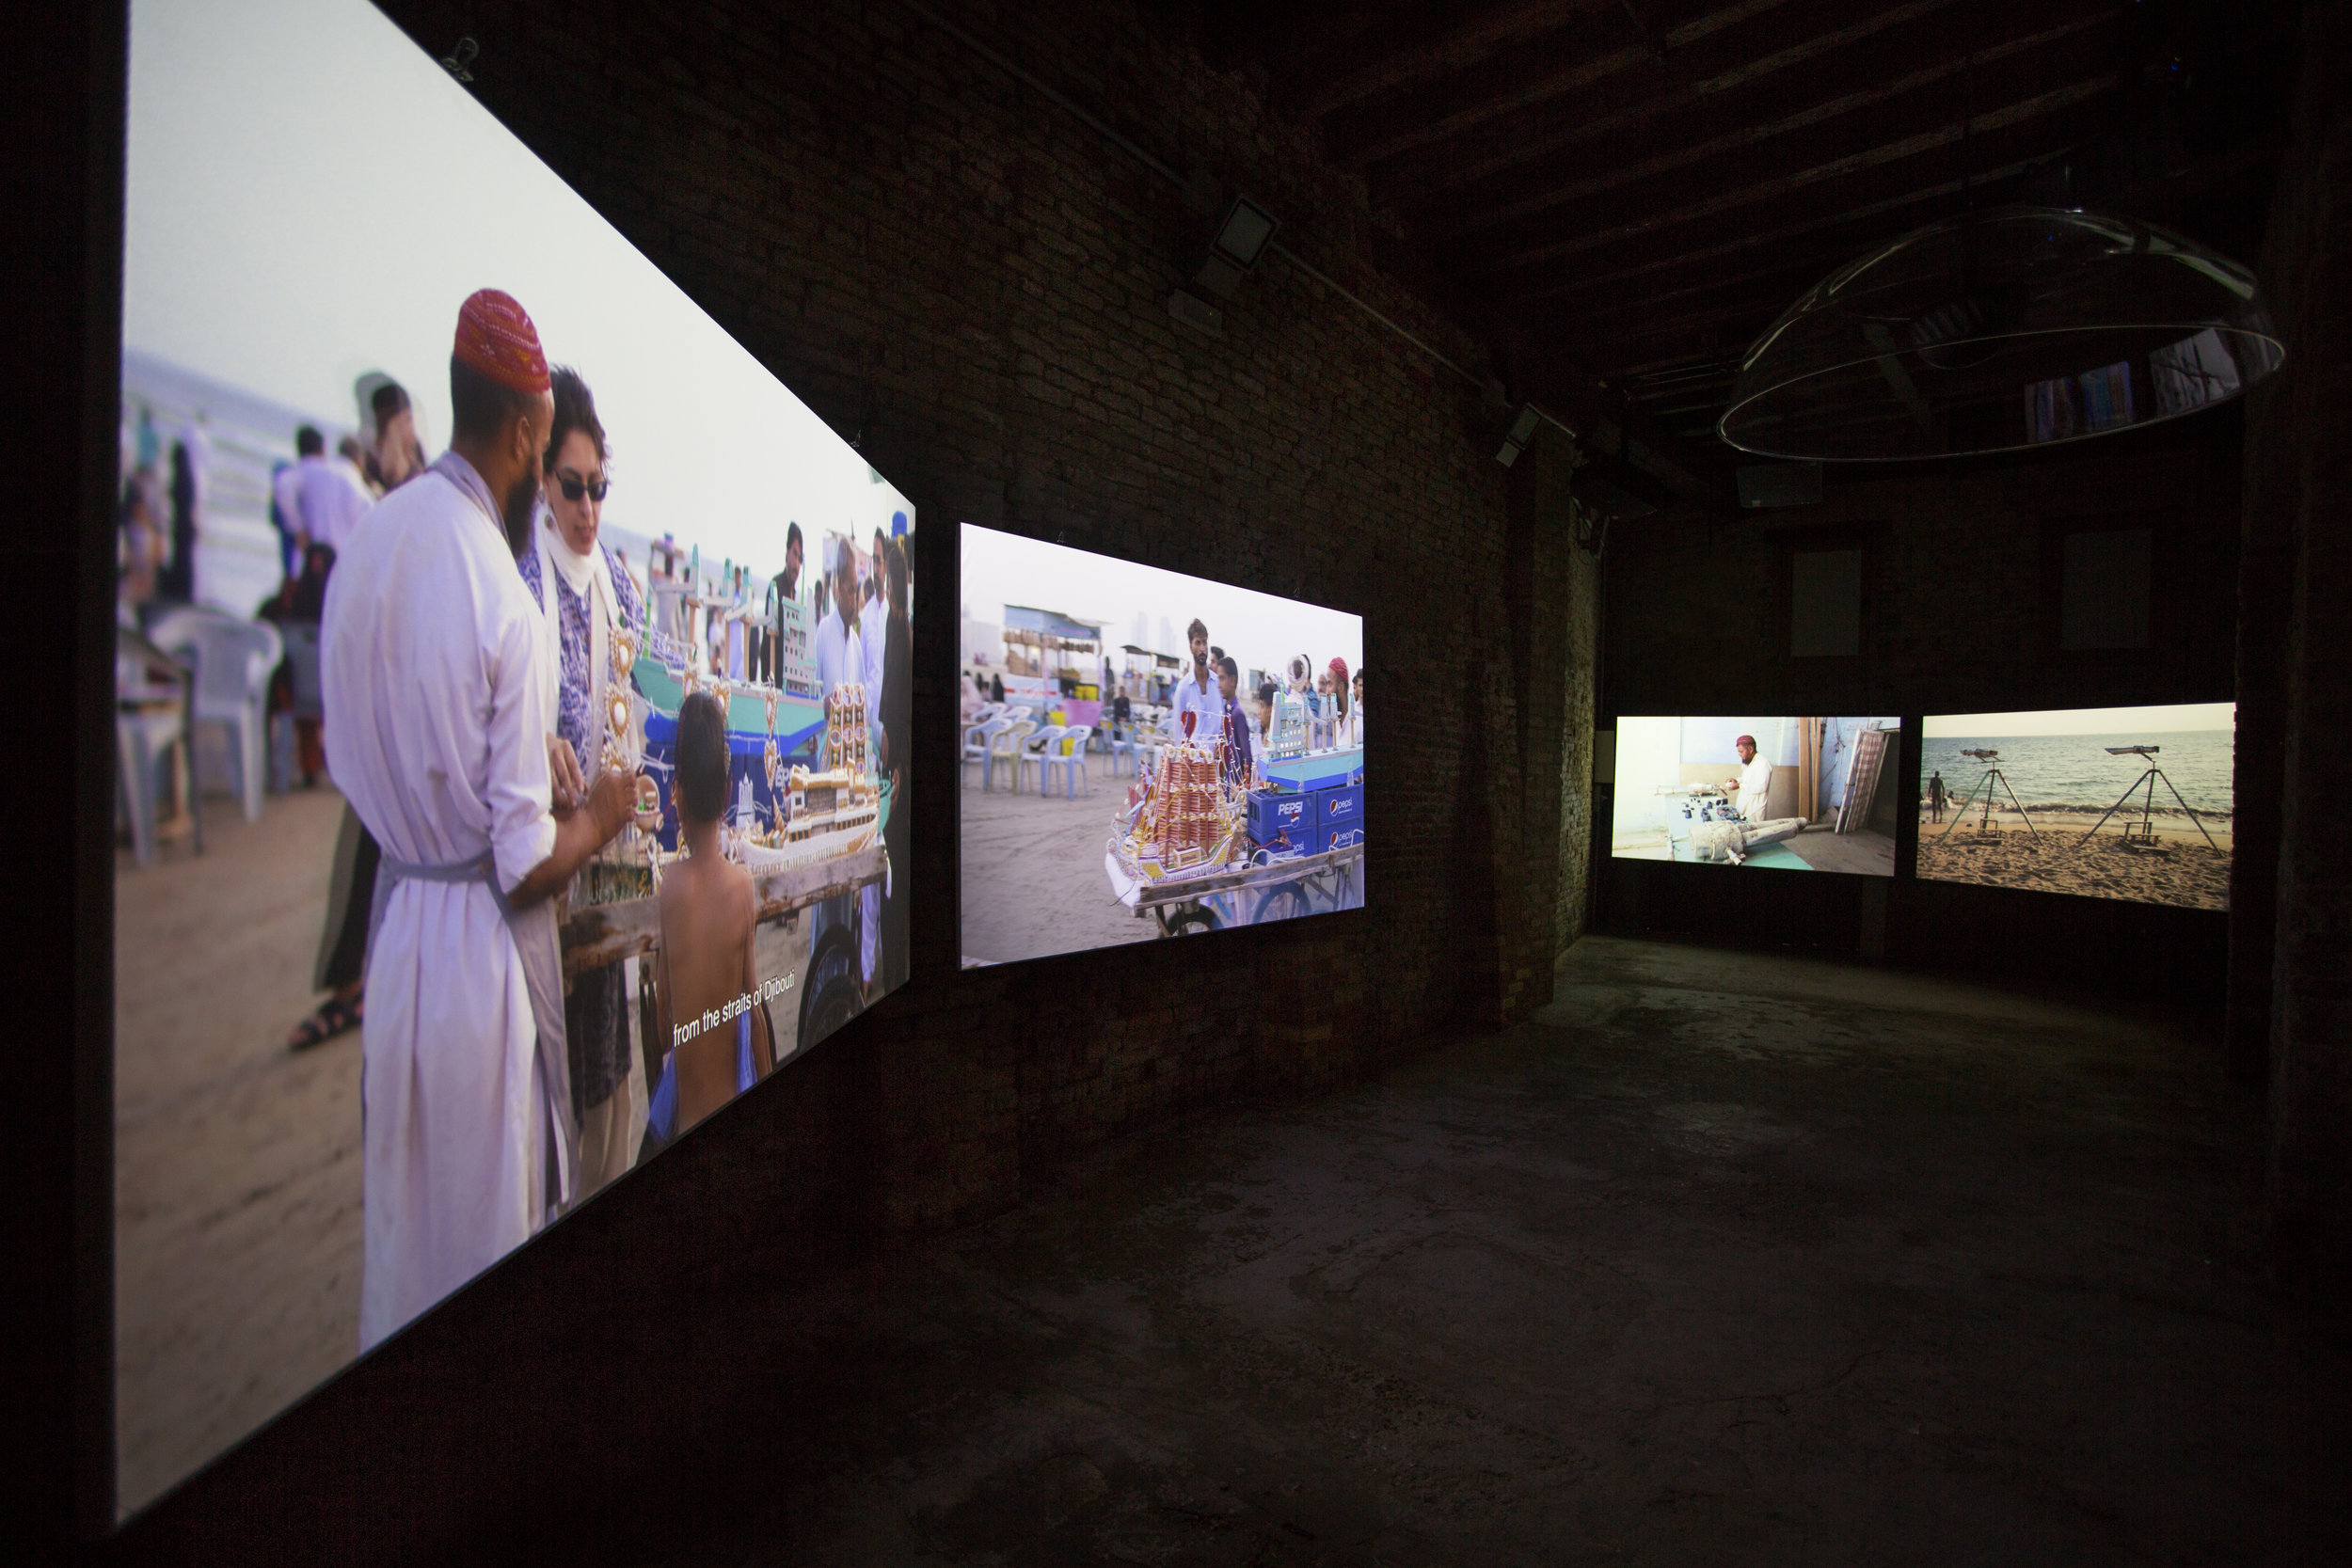 Pavilion of Pakistan (Installation view of Sticky Rice and Other Stories, Naiza Khan, 2019). Credit Riccardo Tosetto Photography (1)